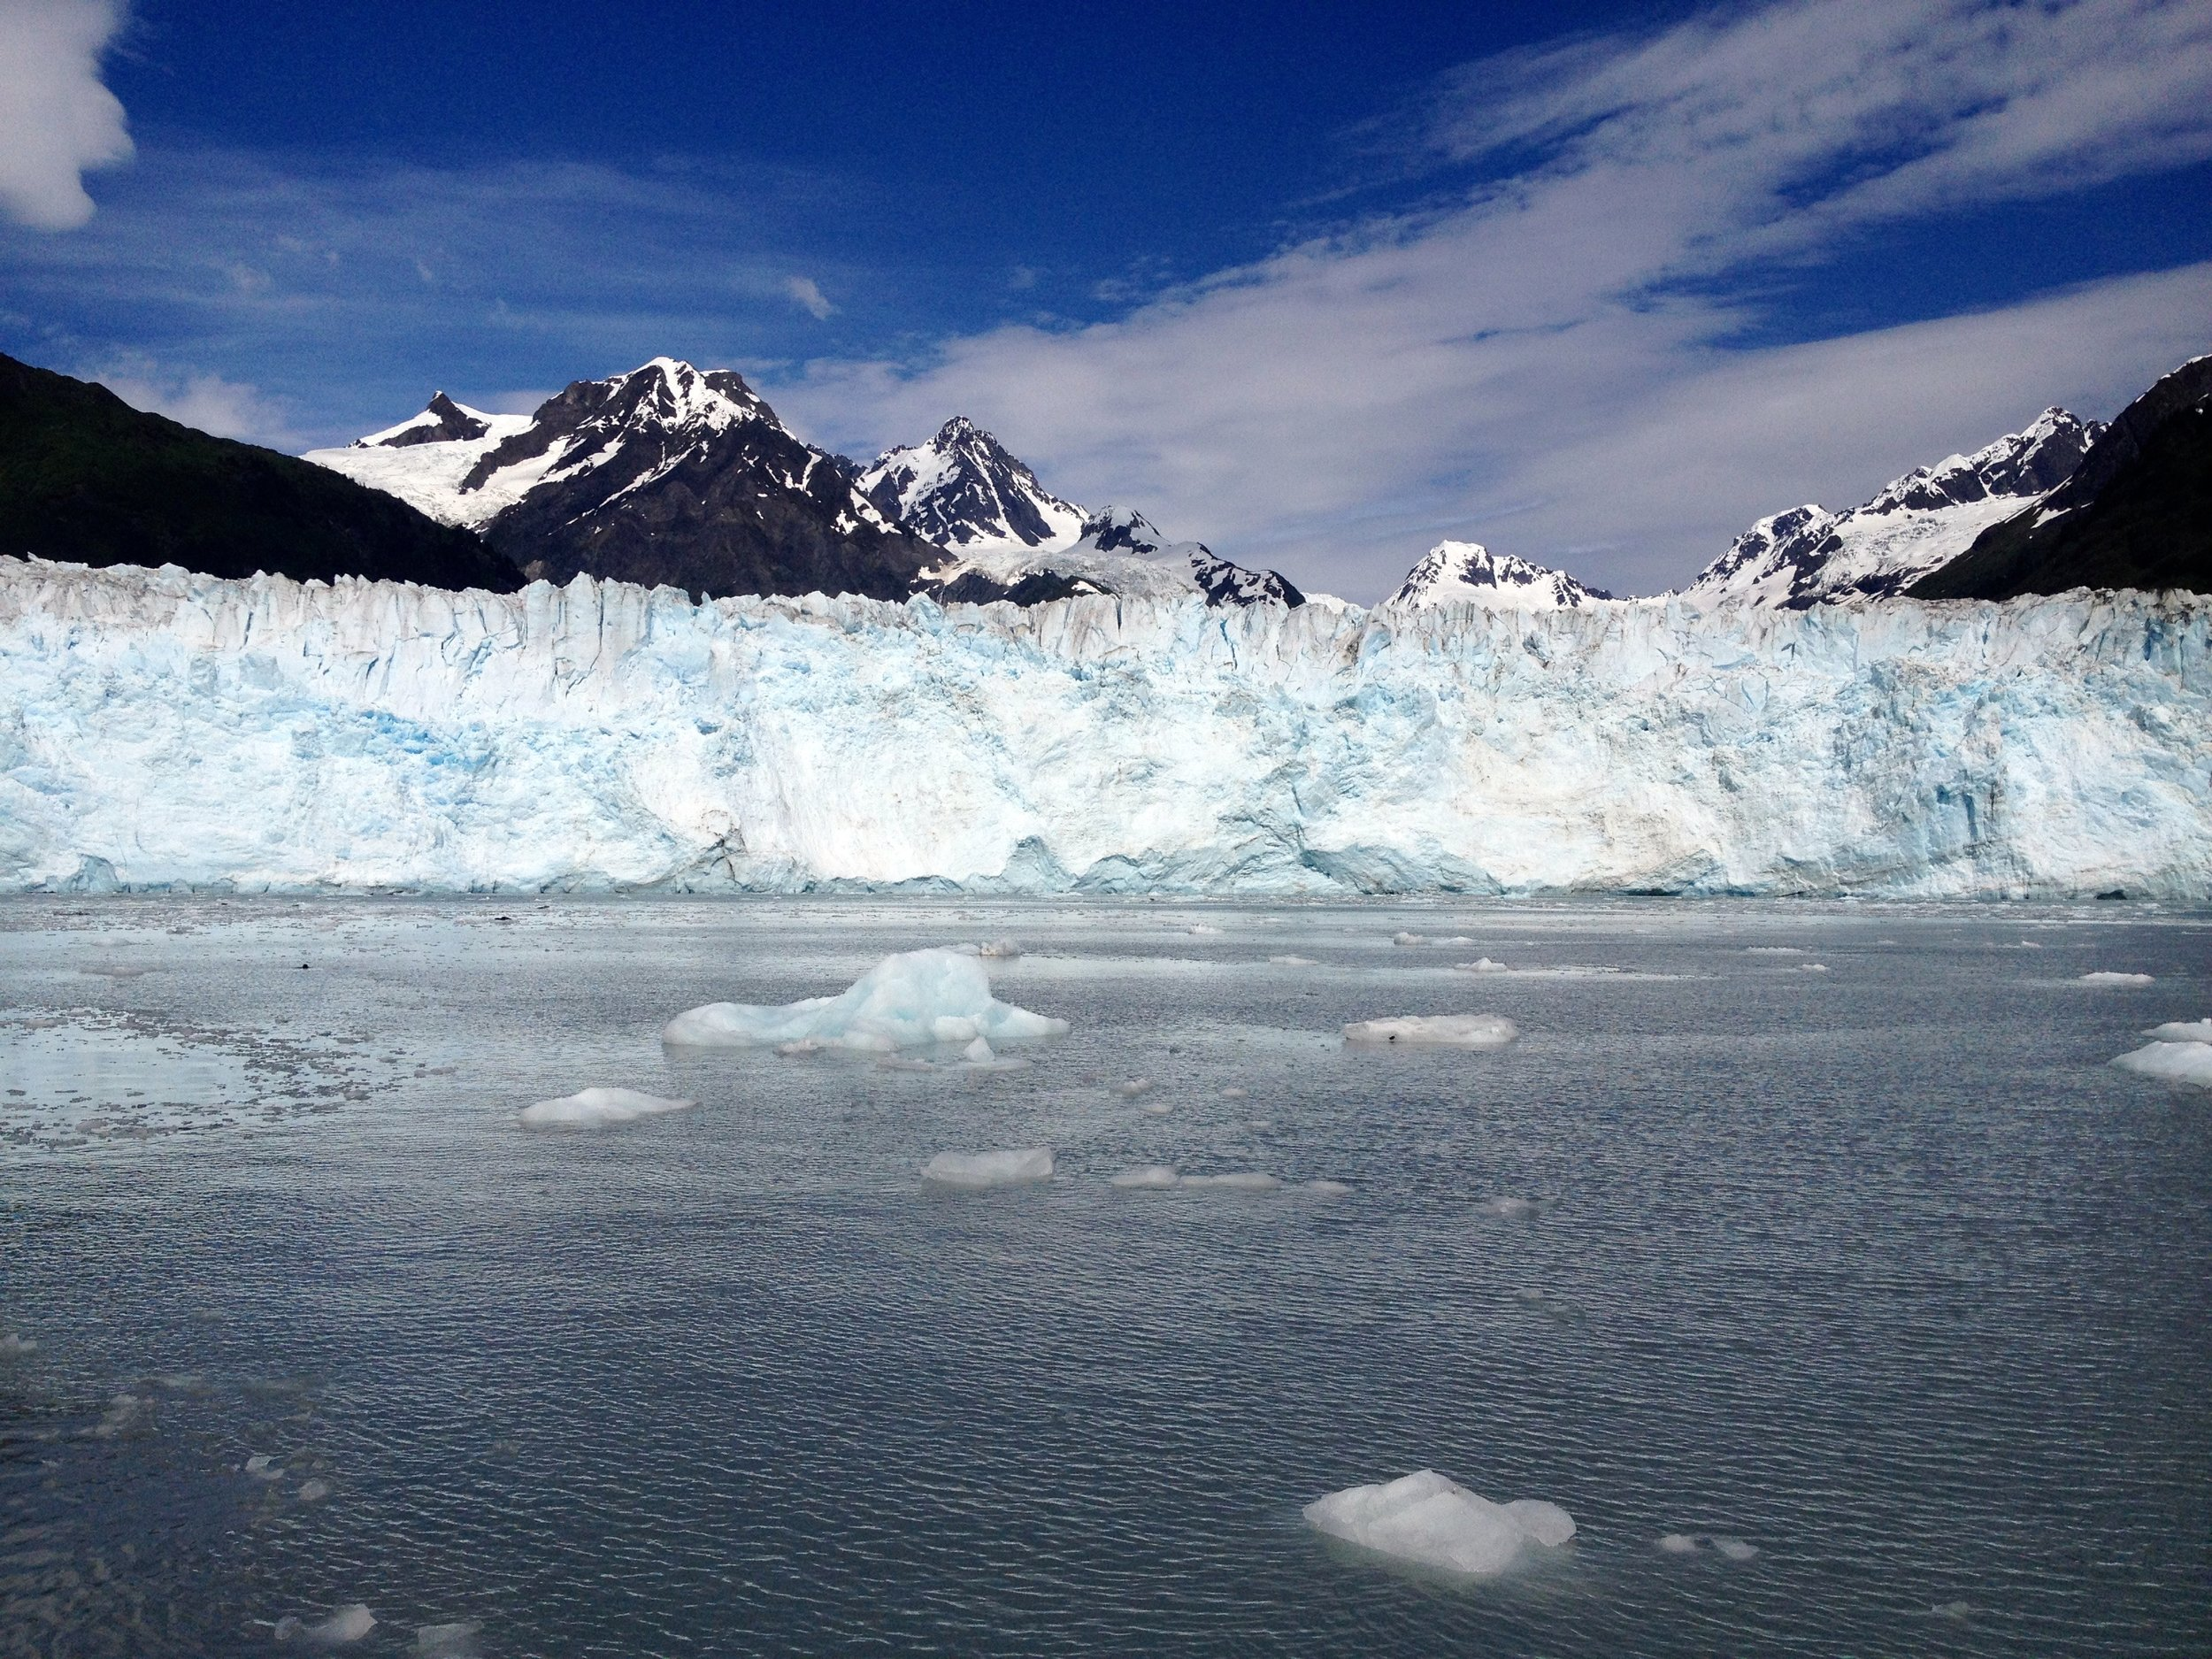 Glaciers - Alaska's tidewater glaciers are a wonder to behold! Stop and have lunch next to one of these beauties, and listen to the subtle crackles and resounding thunder as they slowly calve into the ocean.